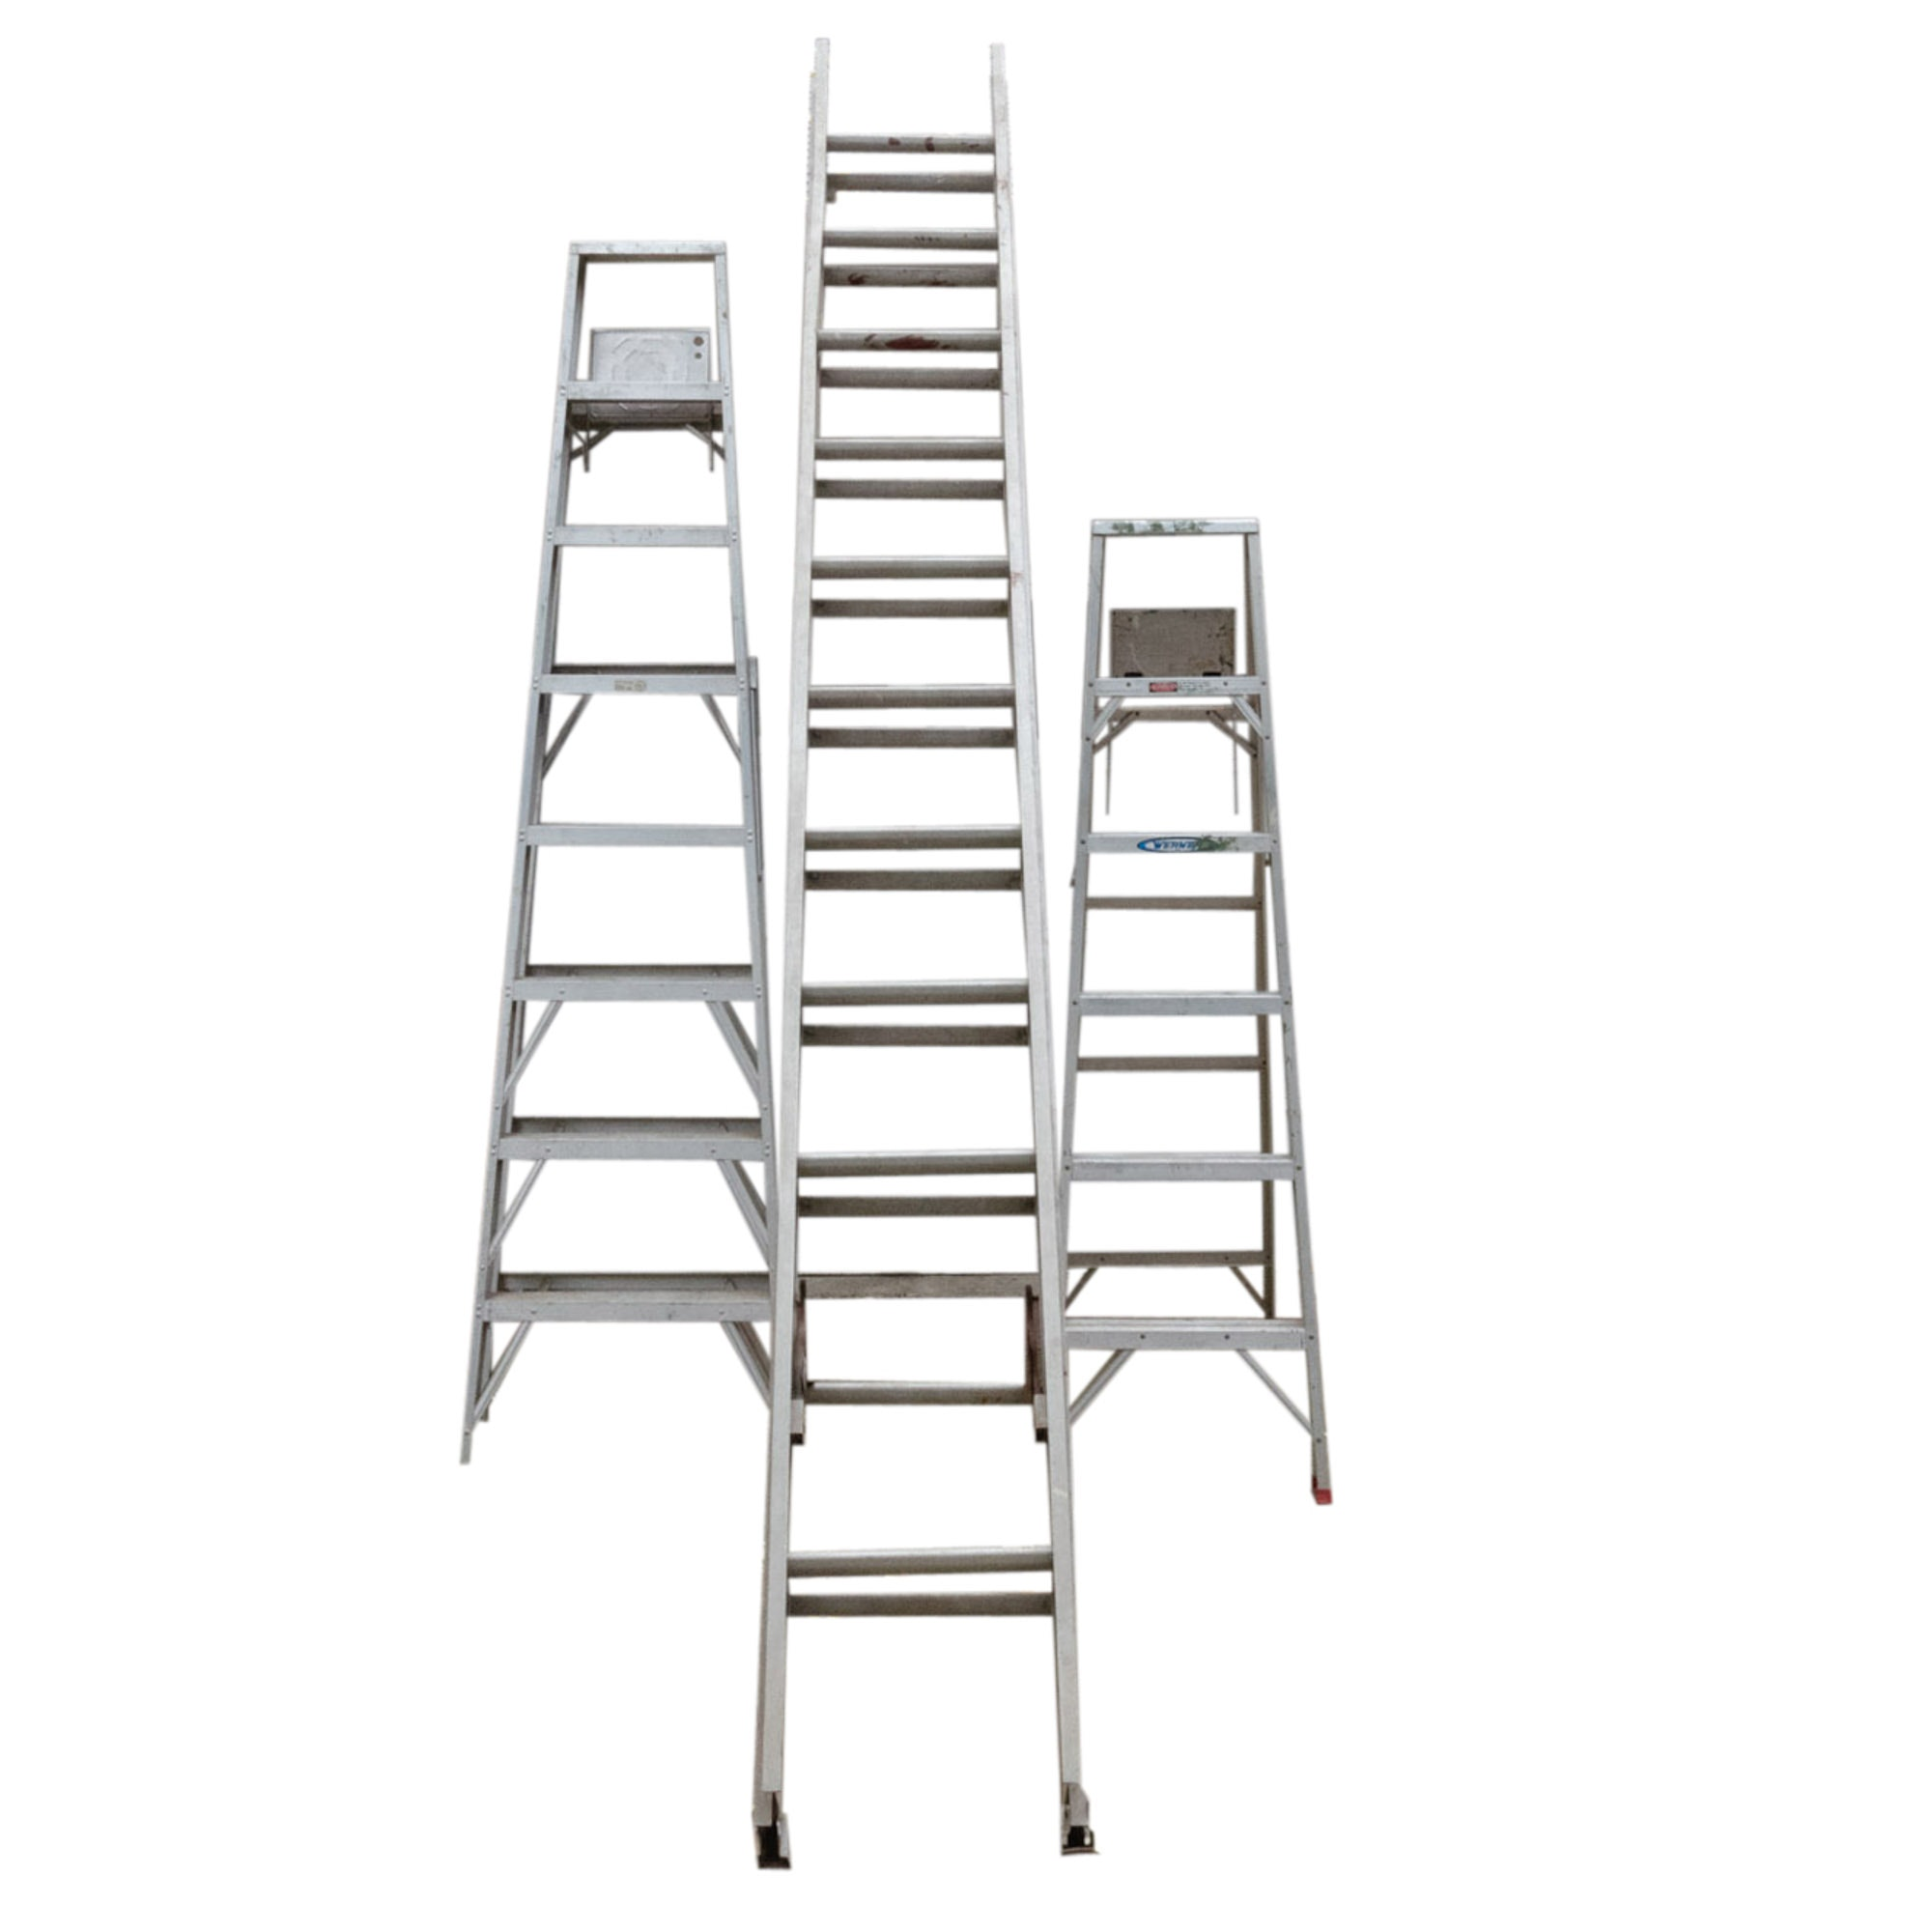 24' Extension Ladder and Two Aluminum Step Ladders